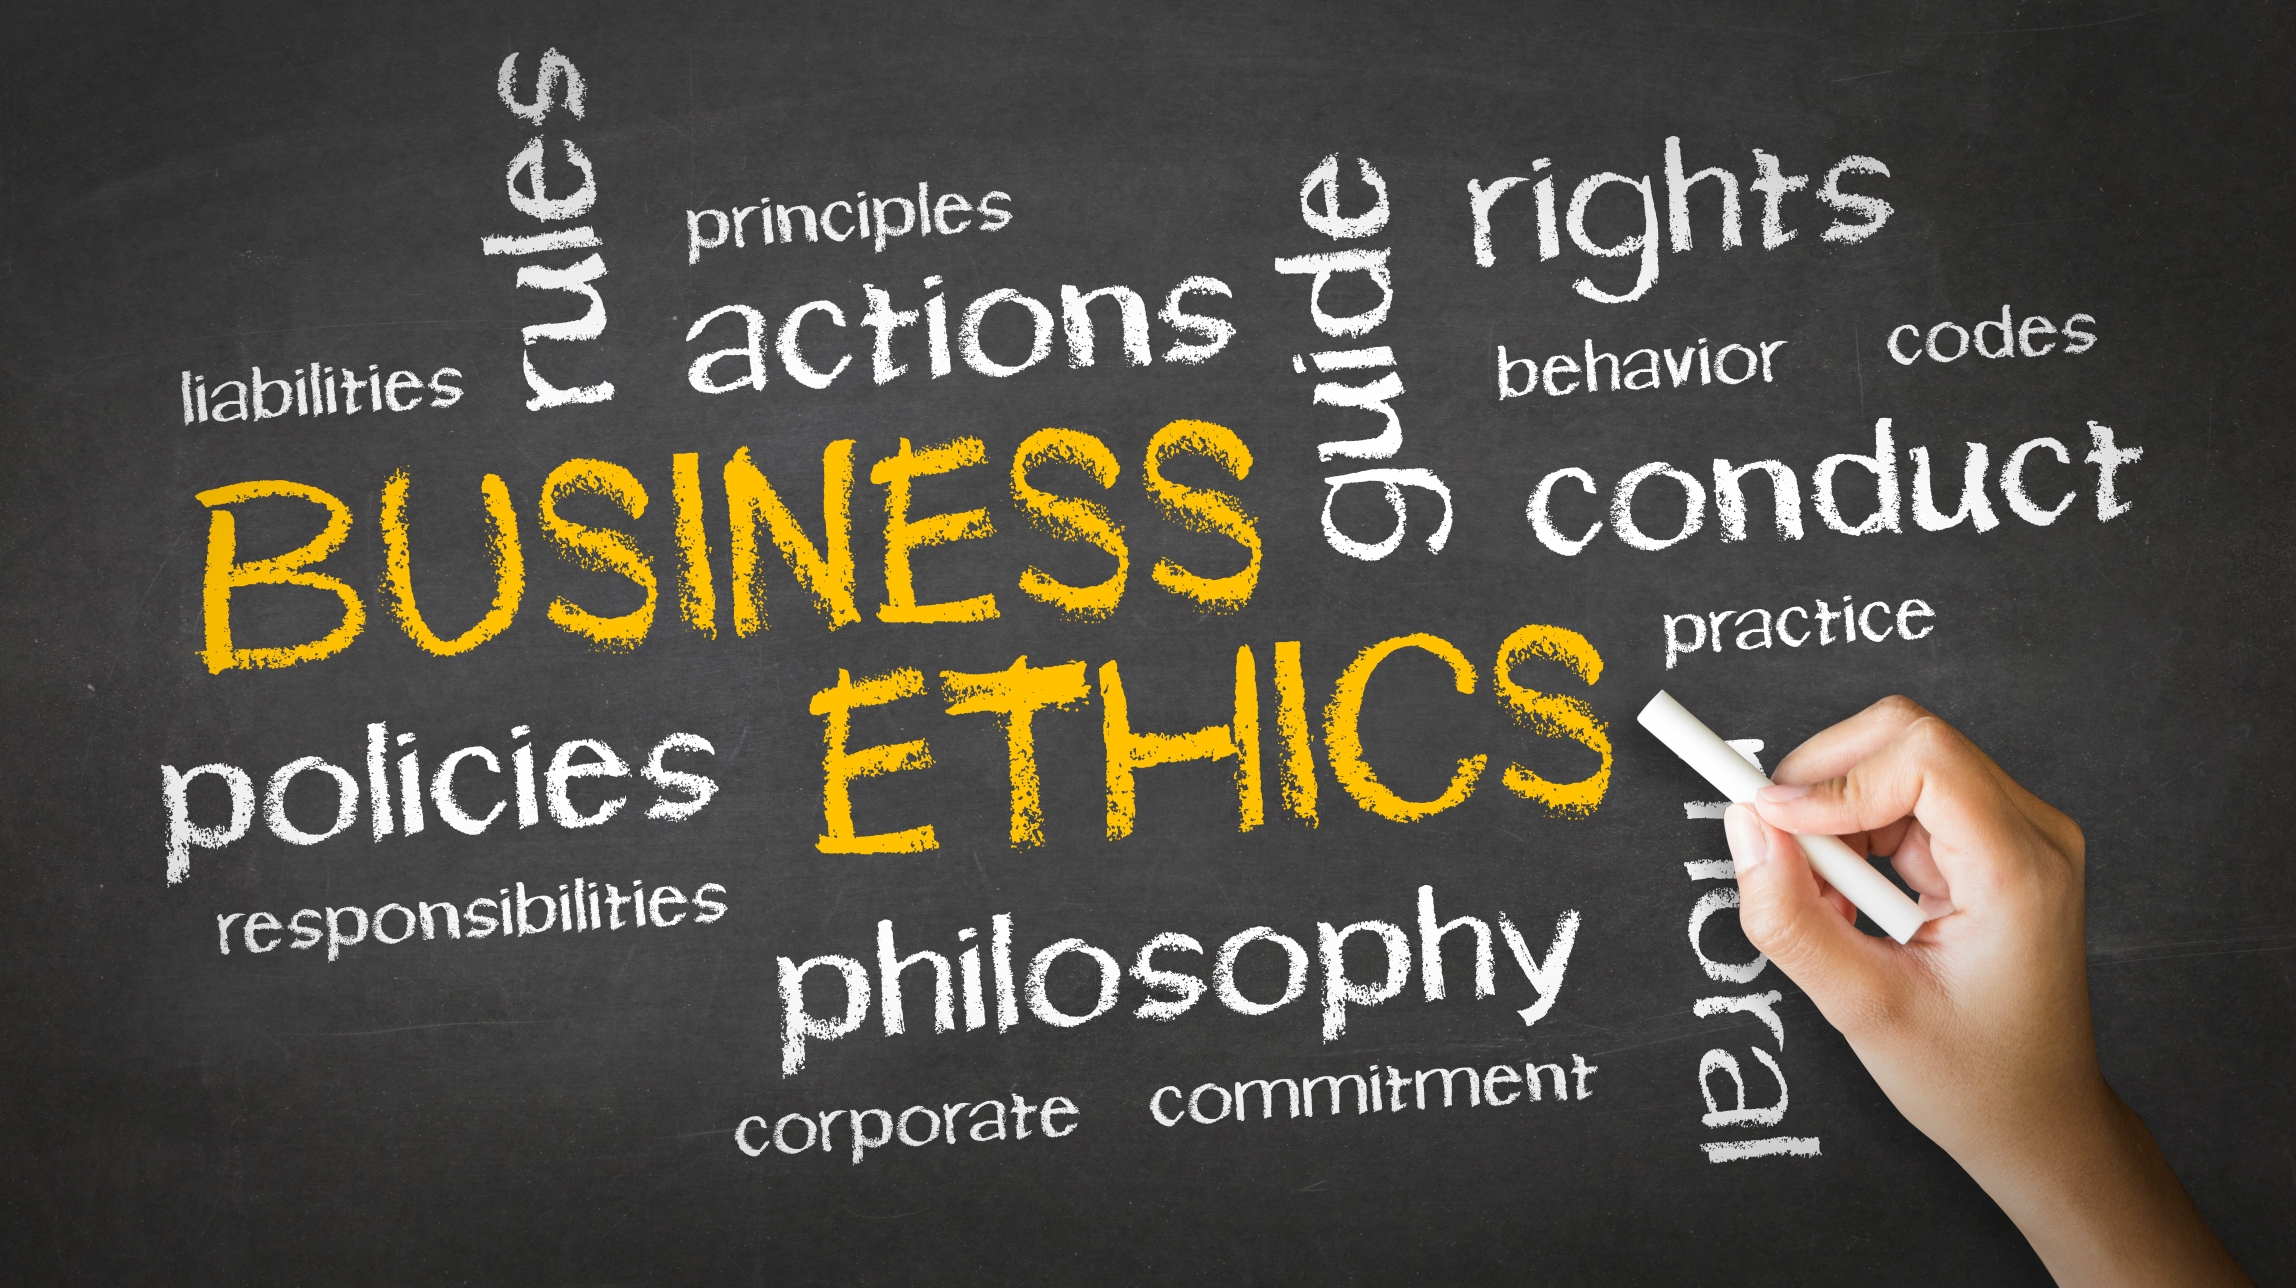 corporate governance and the importance of ethics Terry clark phd discusses the importance of corporate governance in business ethics with oc ferrell phd.